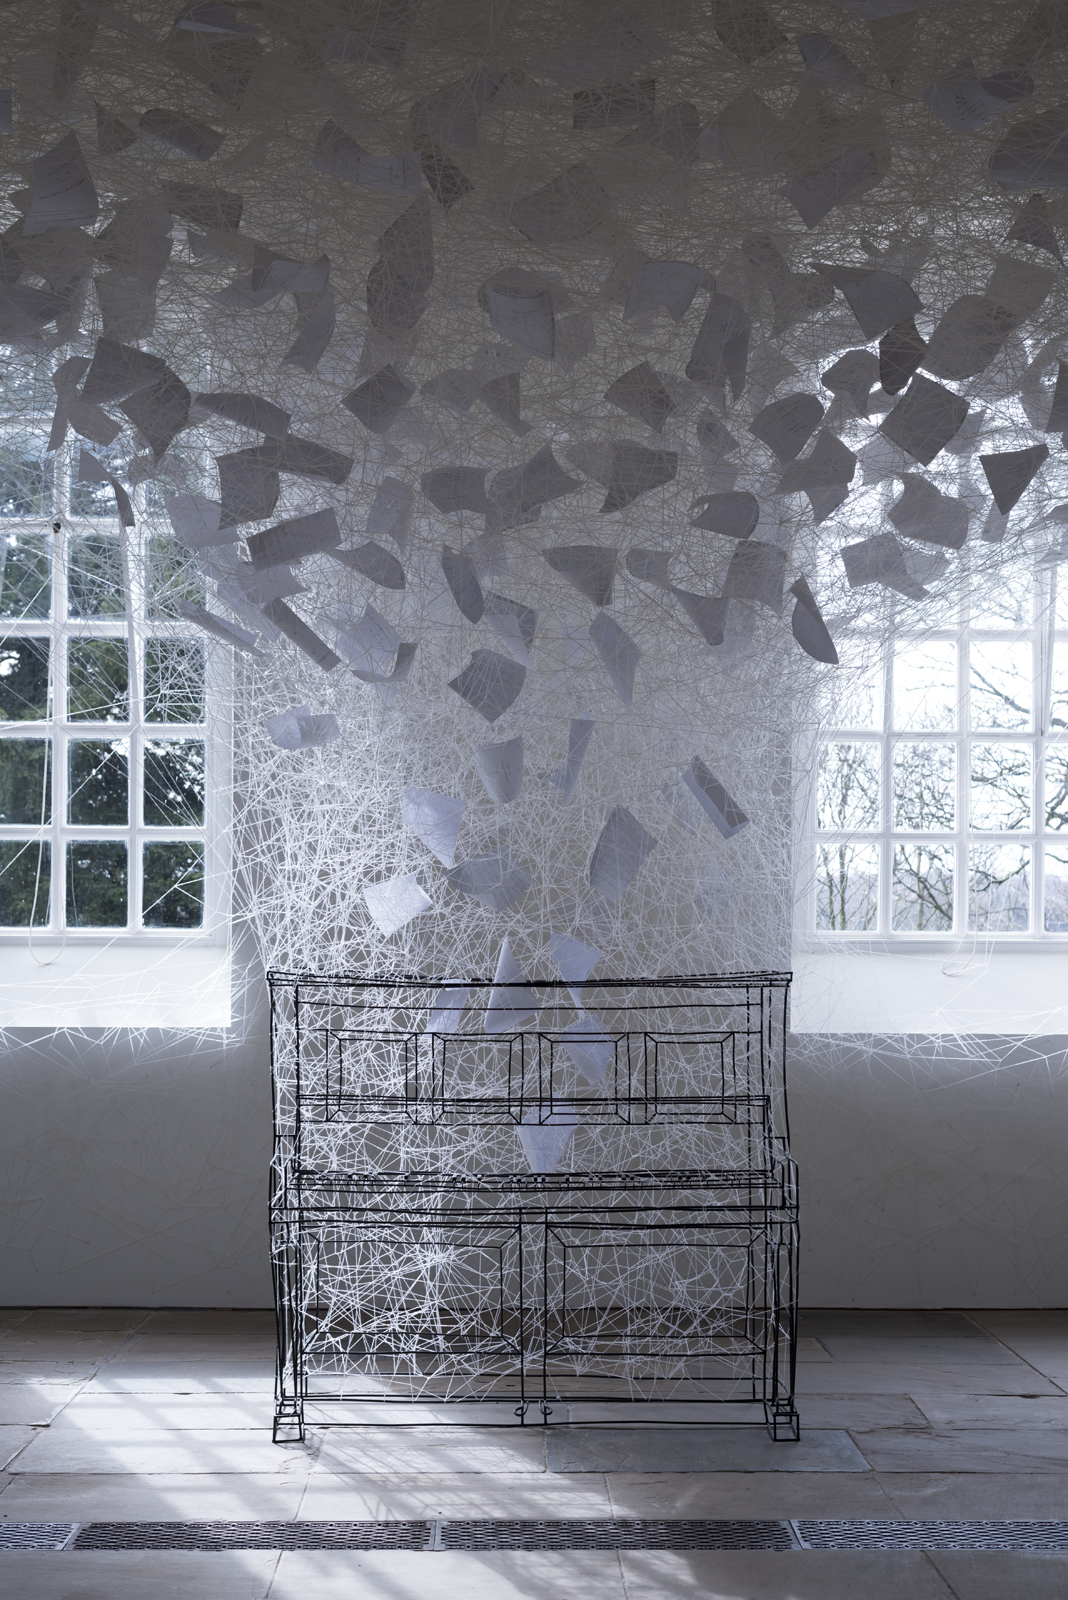 Chiharu Shiota, Beyond Time, 2018. Copyright VG Bild-Kunst, Bonn, 2018 and the artist.